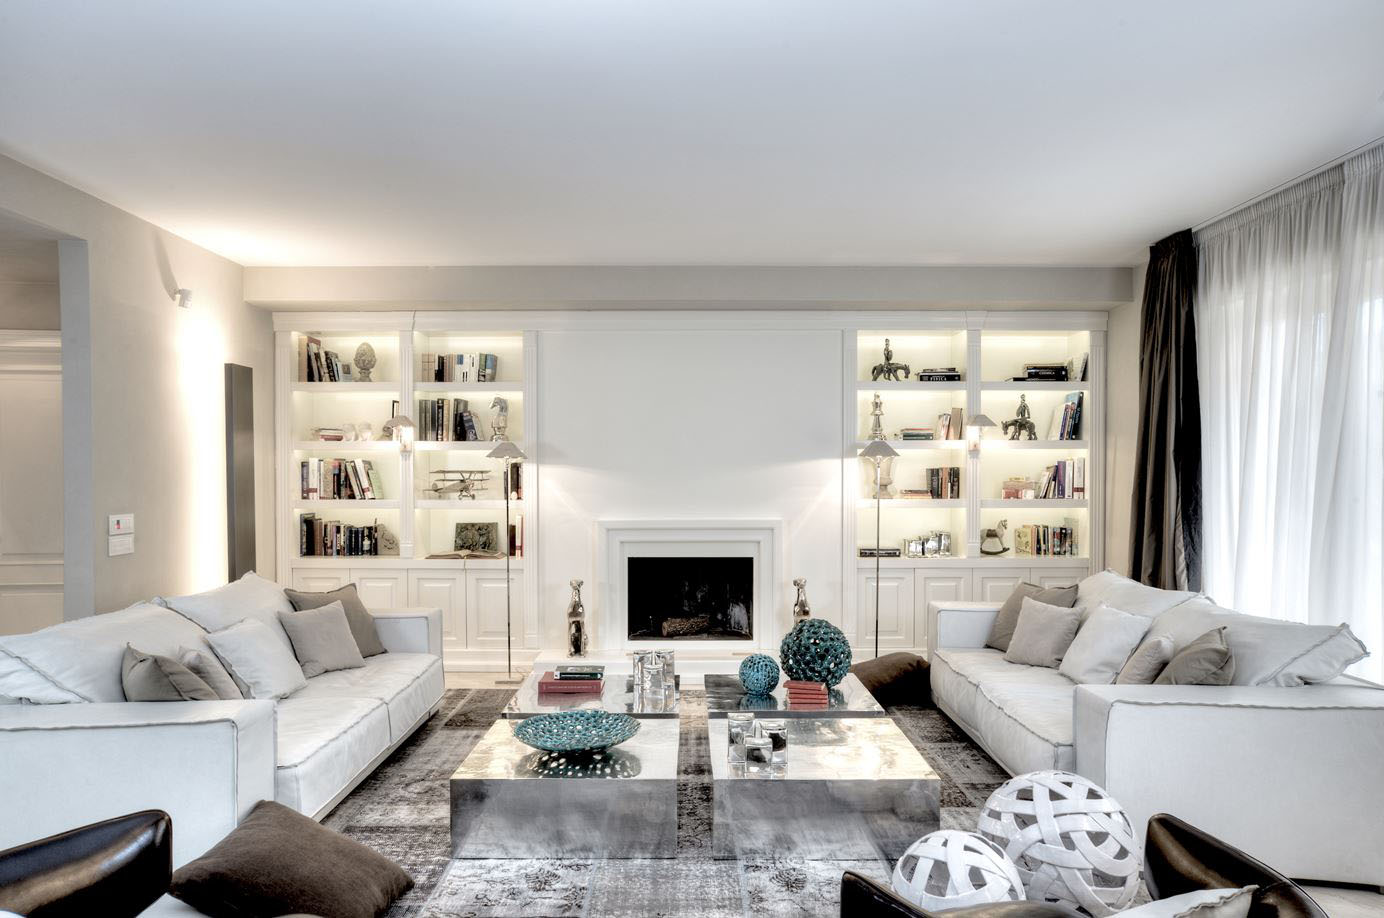 The Key Elements Of Interior Design Impacting The Look And Feel Of A Space